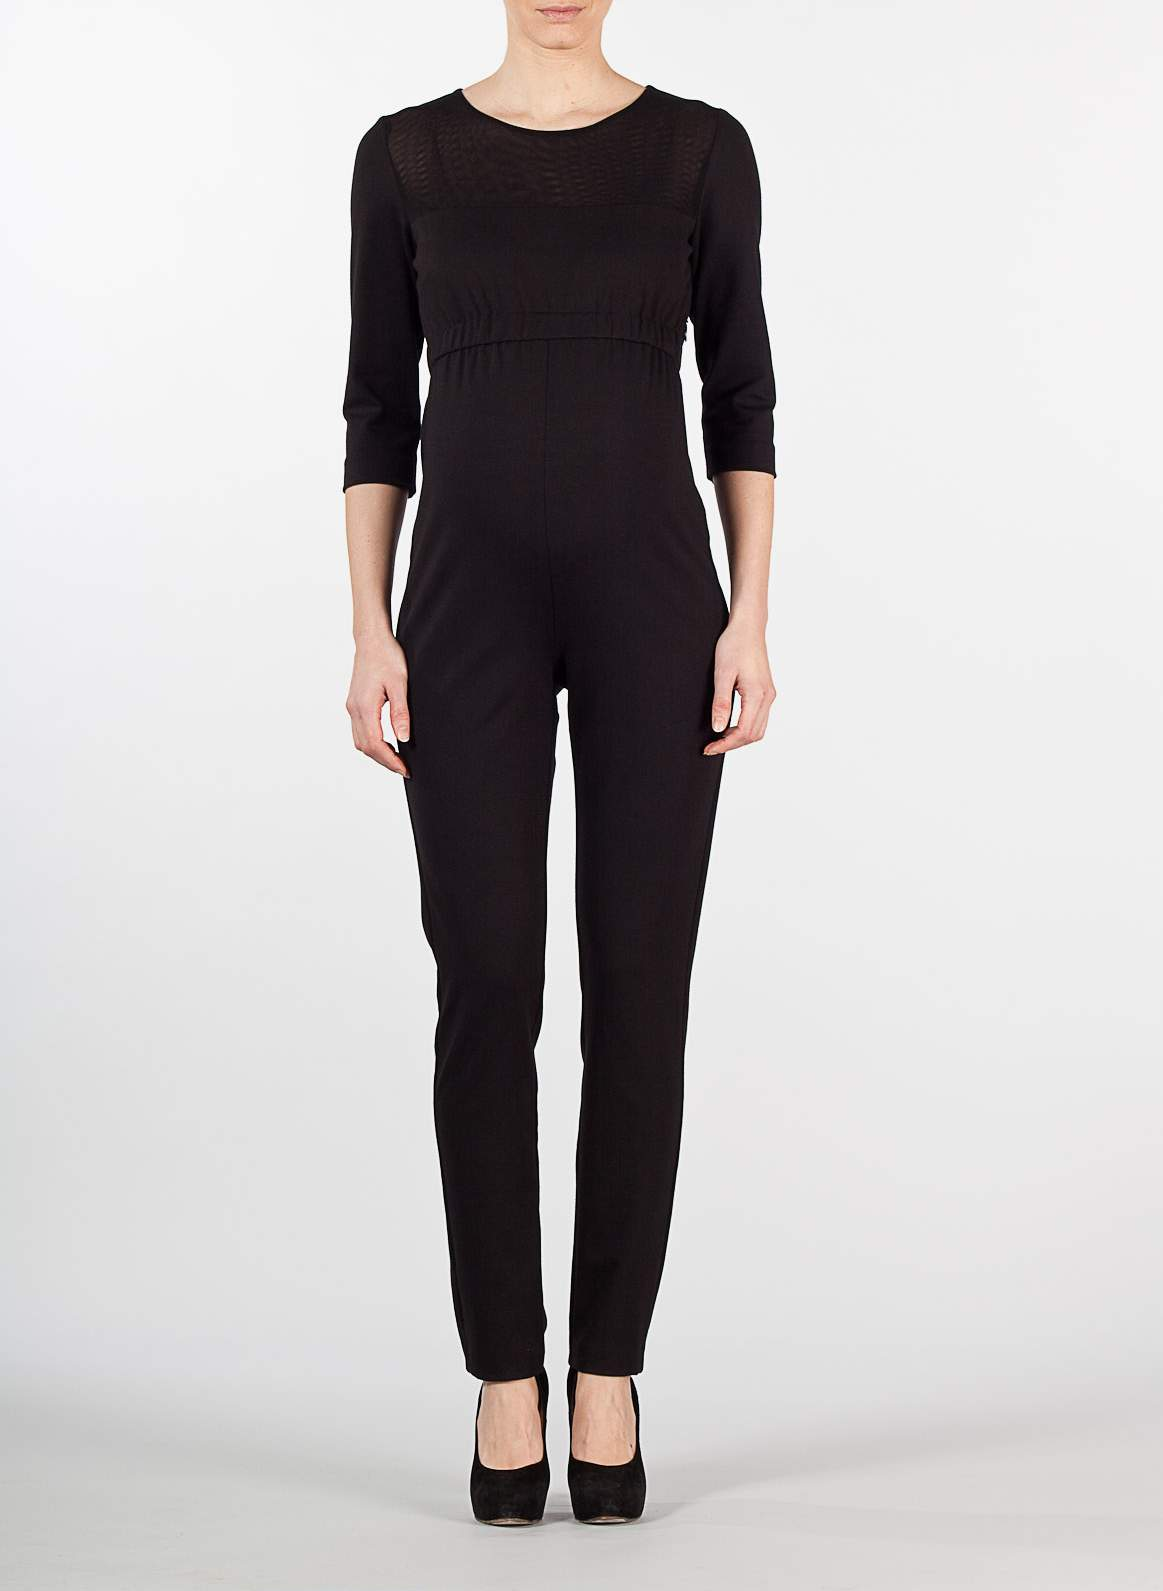 Attesa-Maternity Maternity Jumpsuit with elasticated waistband